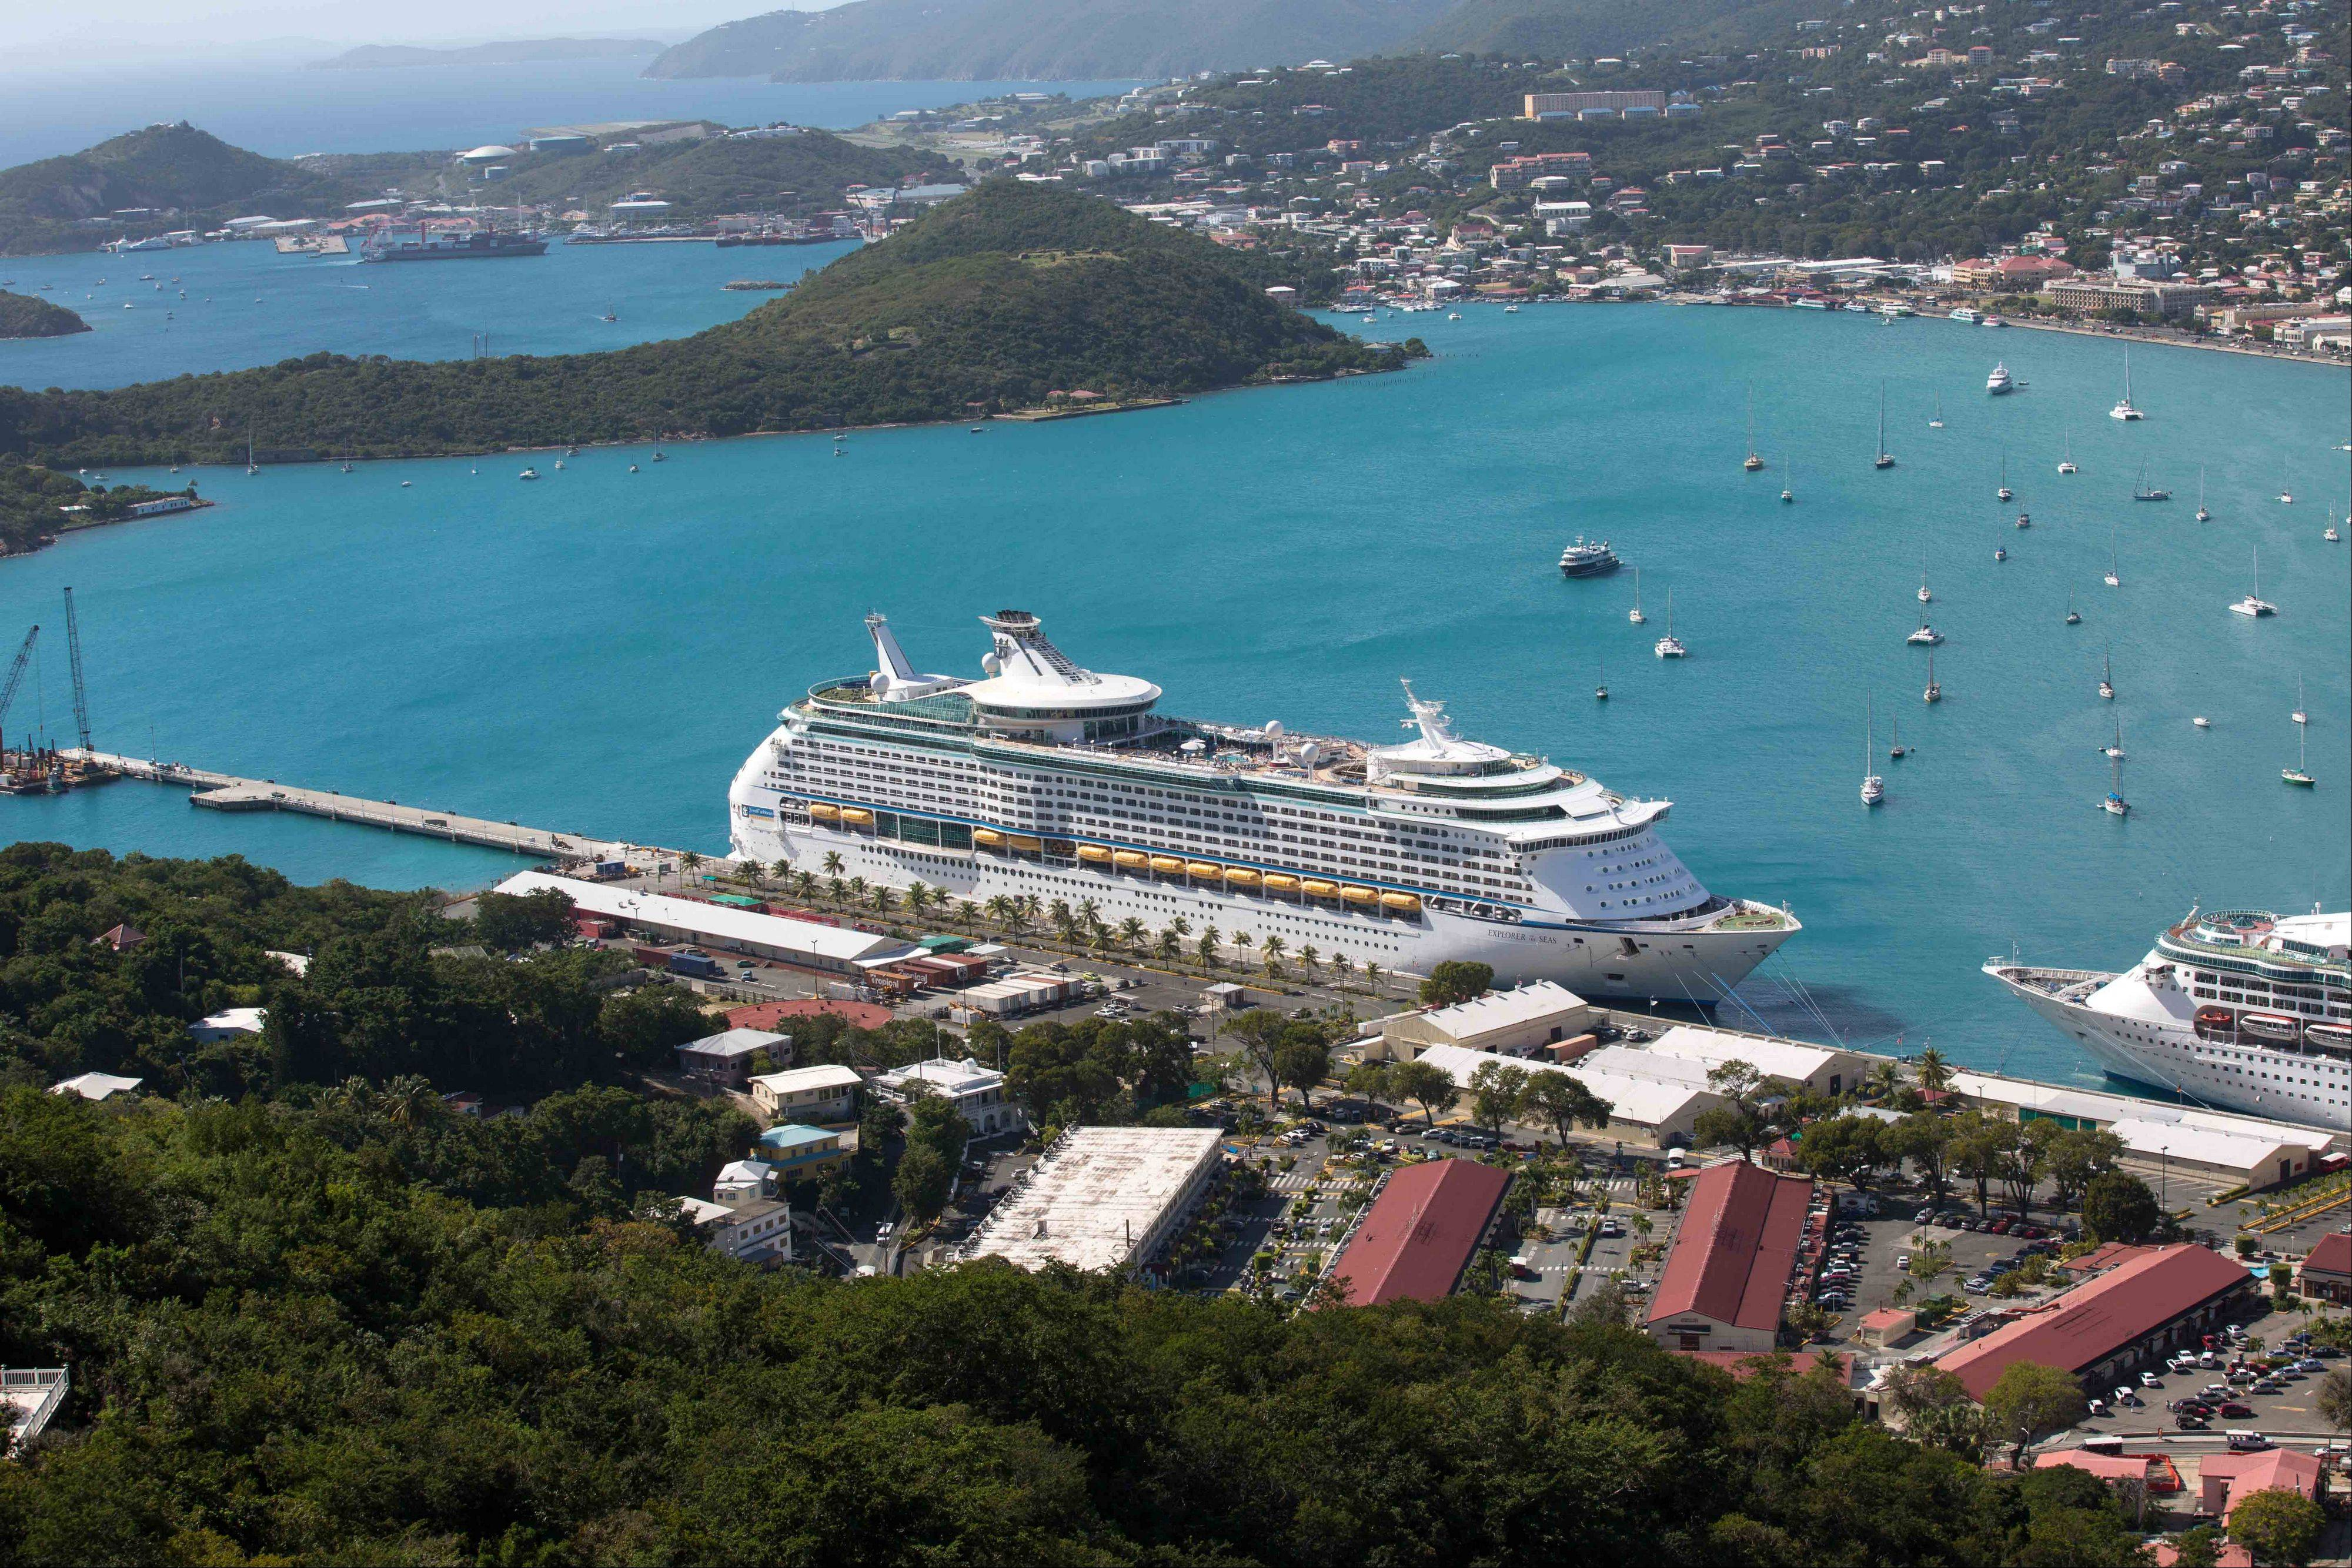 The Royal Caribbean International's Explorer of the Seas docked at Charlotte Amalie Harbor in St. Thomas, U. S. Virgin Islands, Sunday.